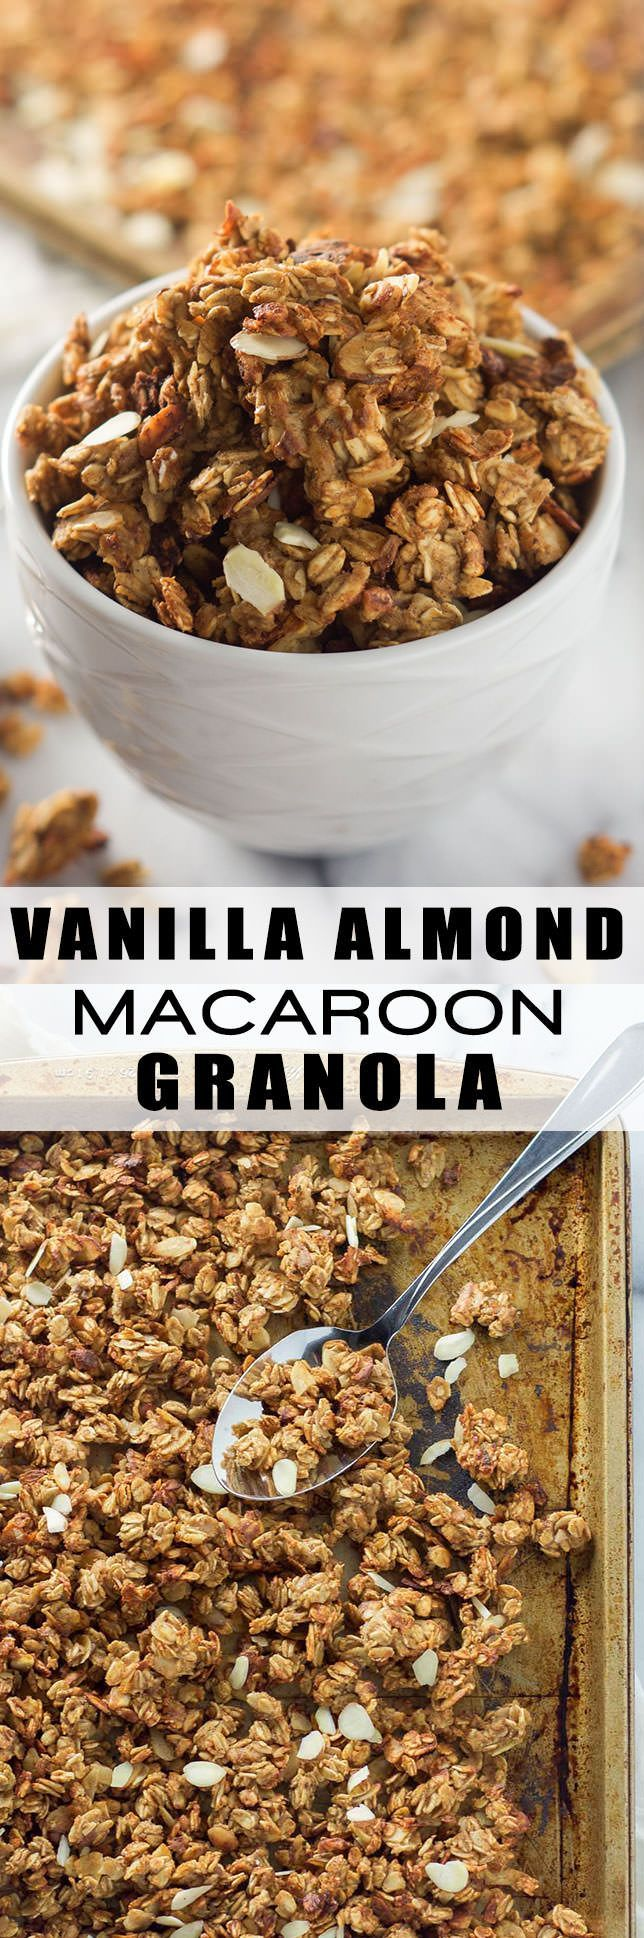 Vanilla Almond Granola Recipe, Homemade, Healthy, Clusters, Cinnamon, Maple, Breakfast, Greek Yogurt, Simple, Rolled Oats, Clean Eating, Egg Whites